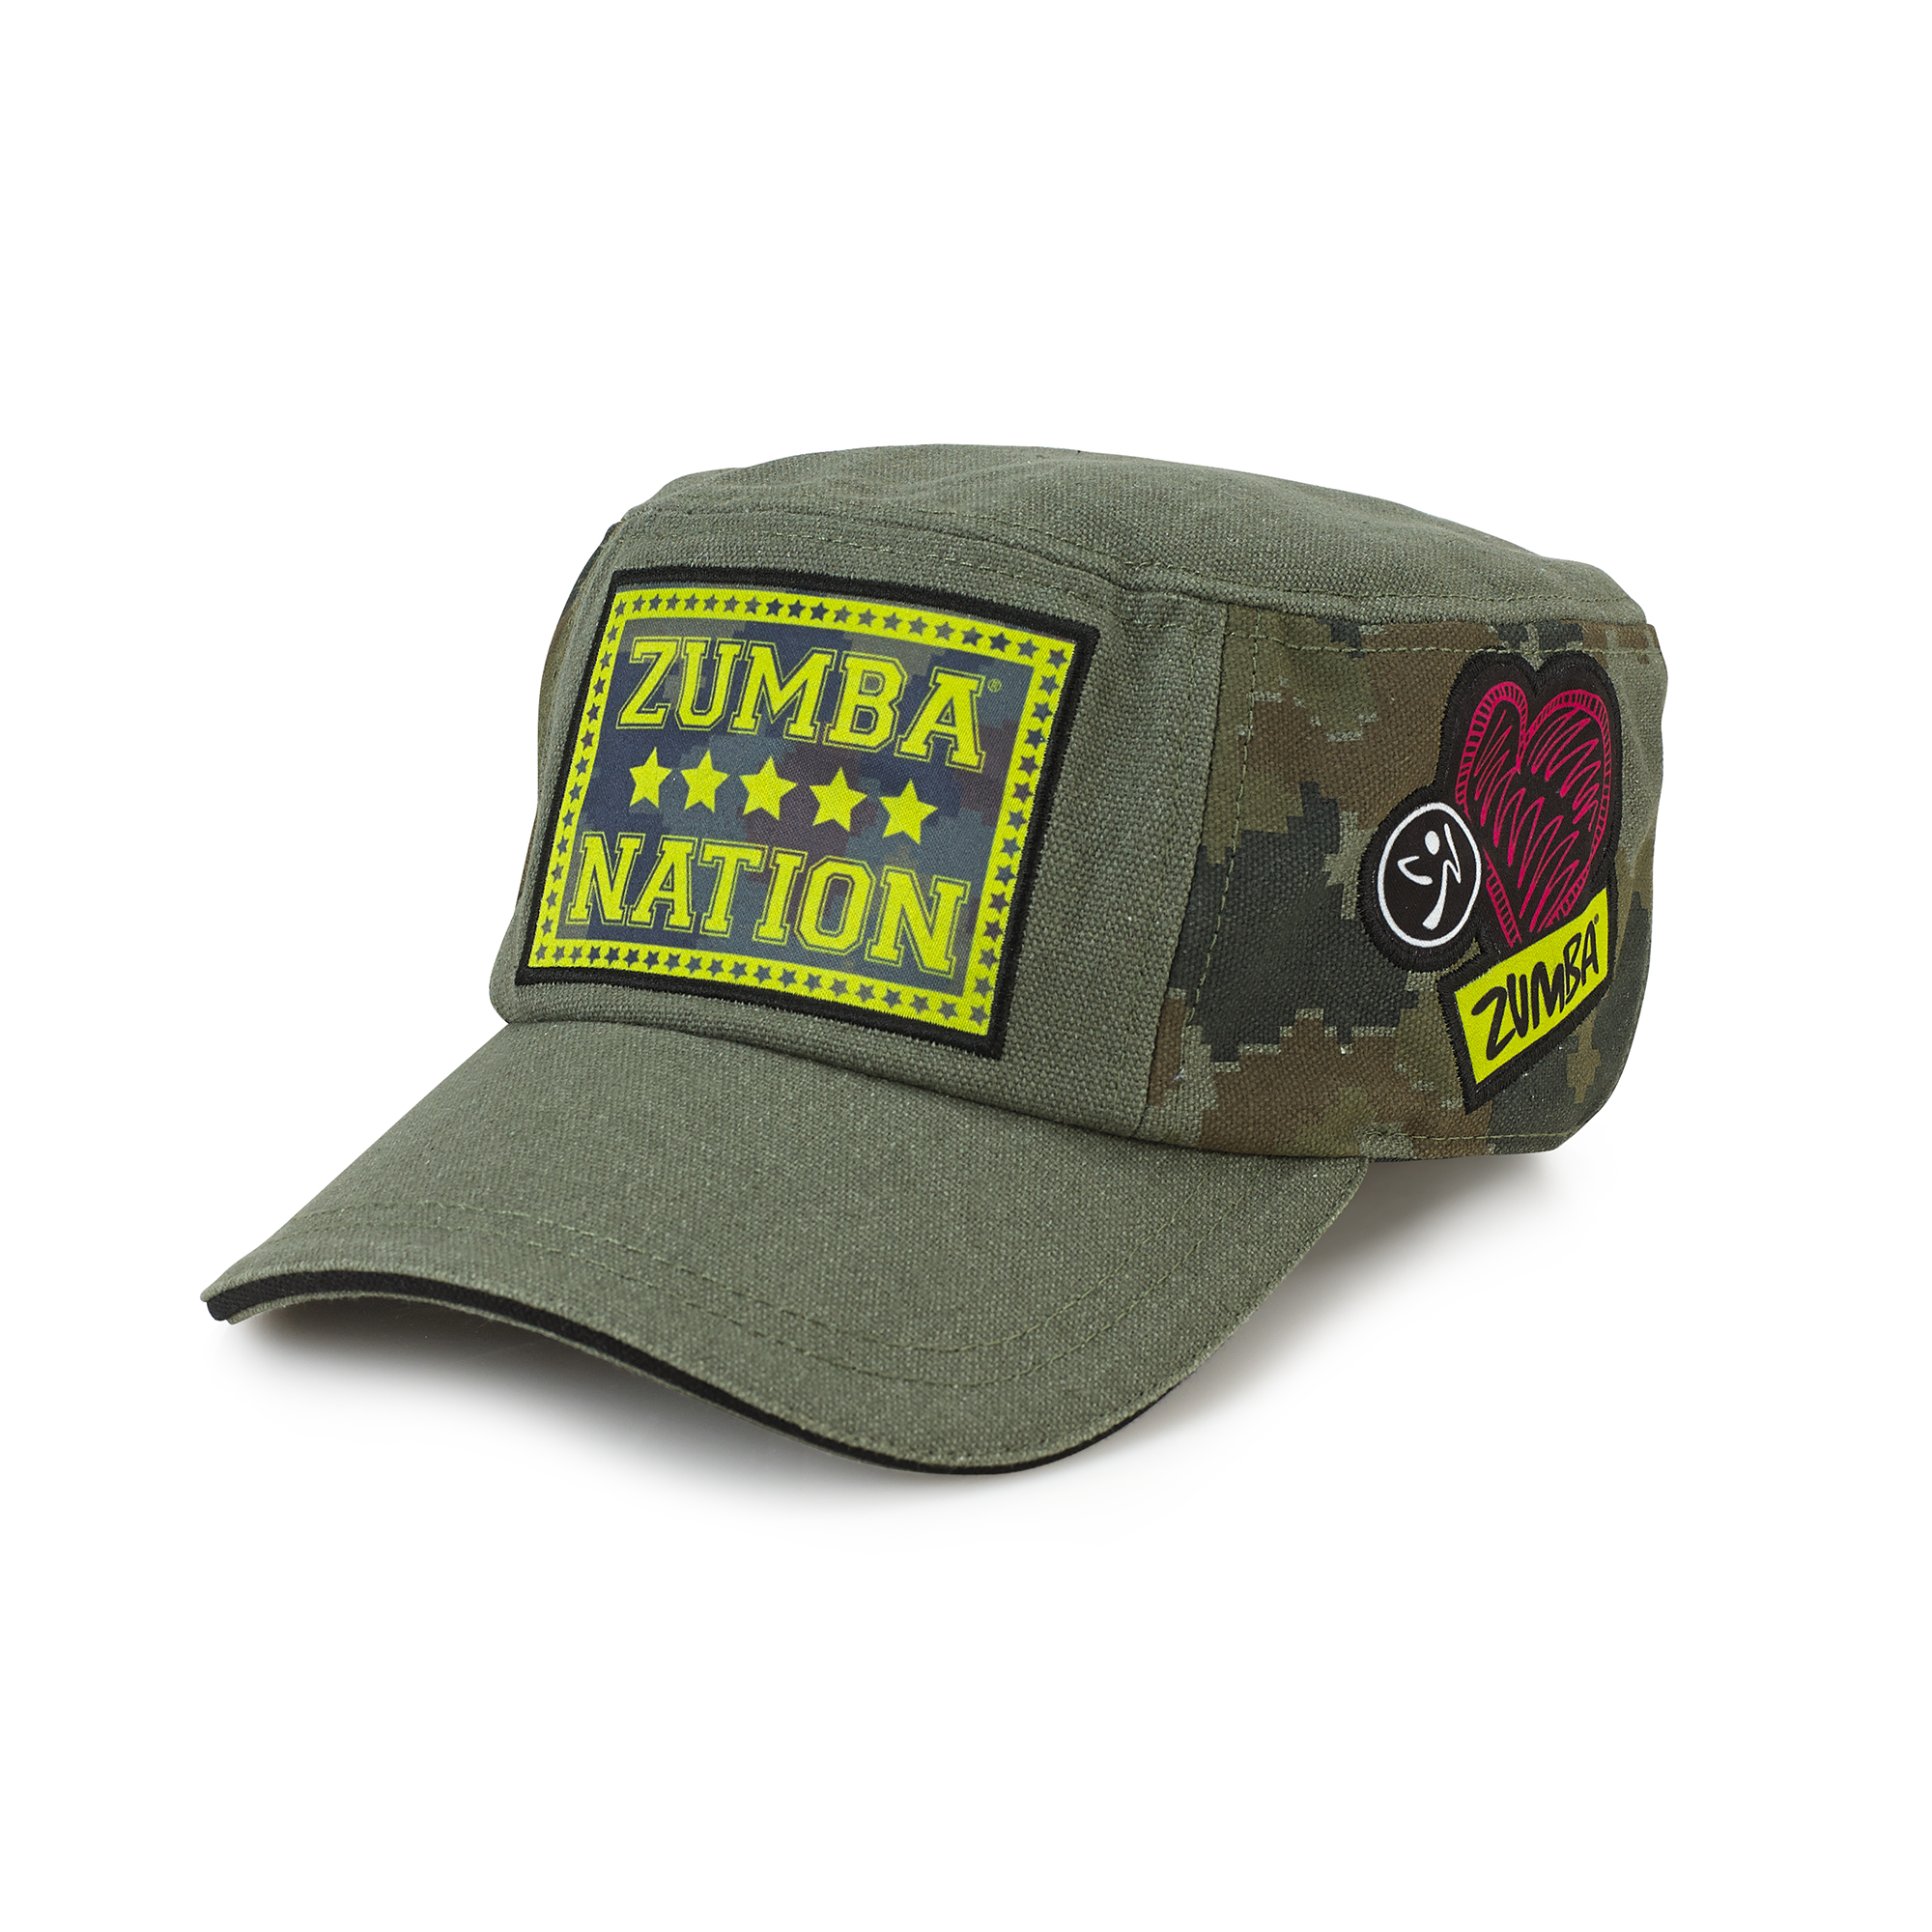 Patched Up Military Hat Zumba Shop Seazumba Shop Sea